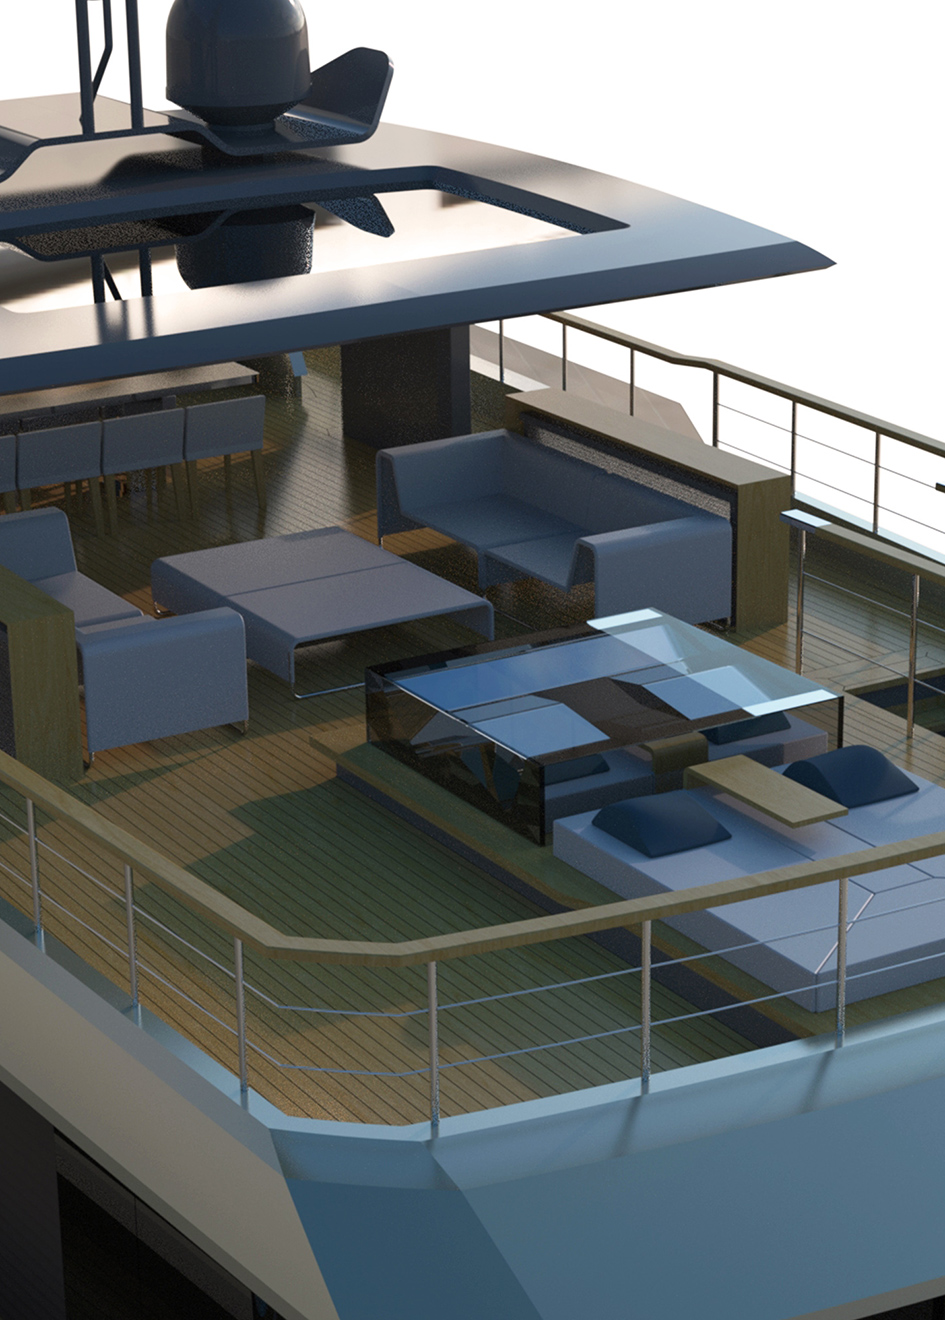 the-flybridge-of-the-couach-3800-lounge-explorer-yacht-concept